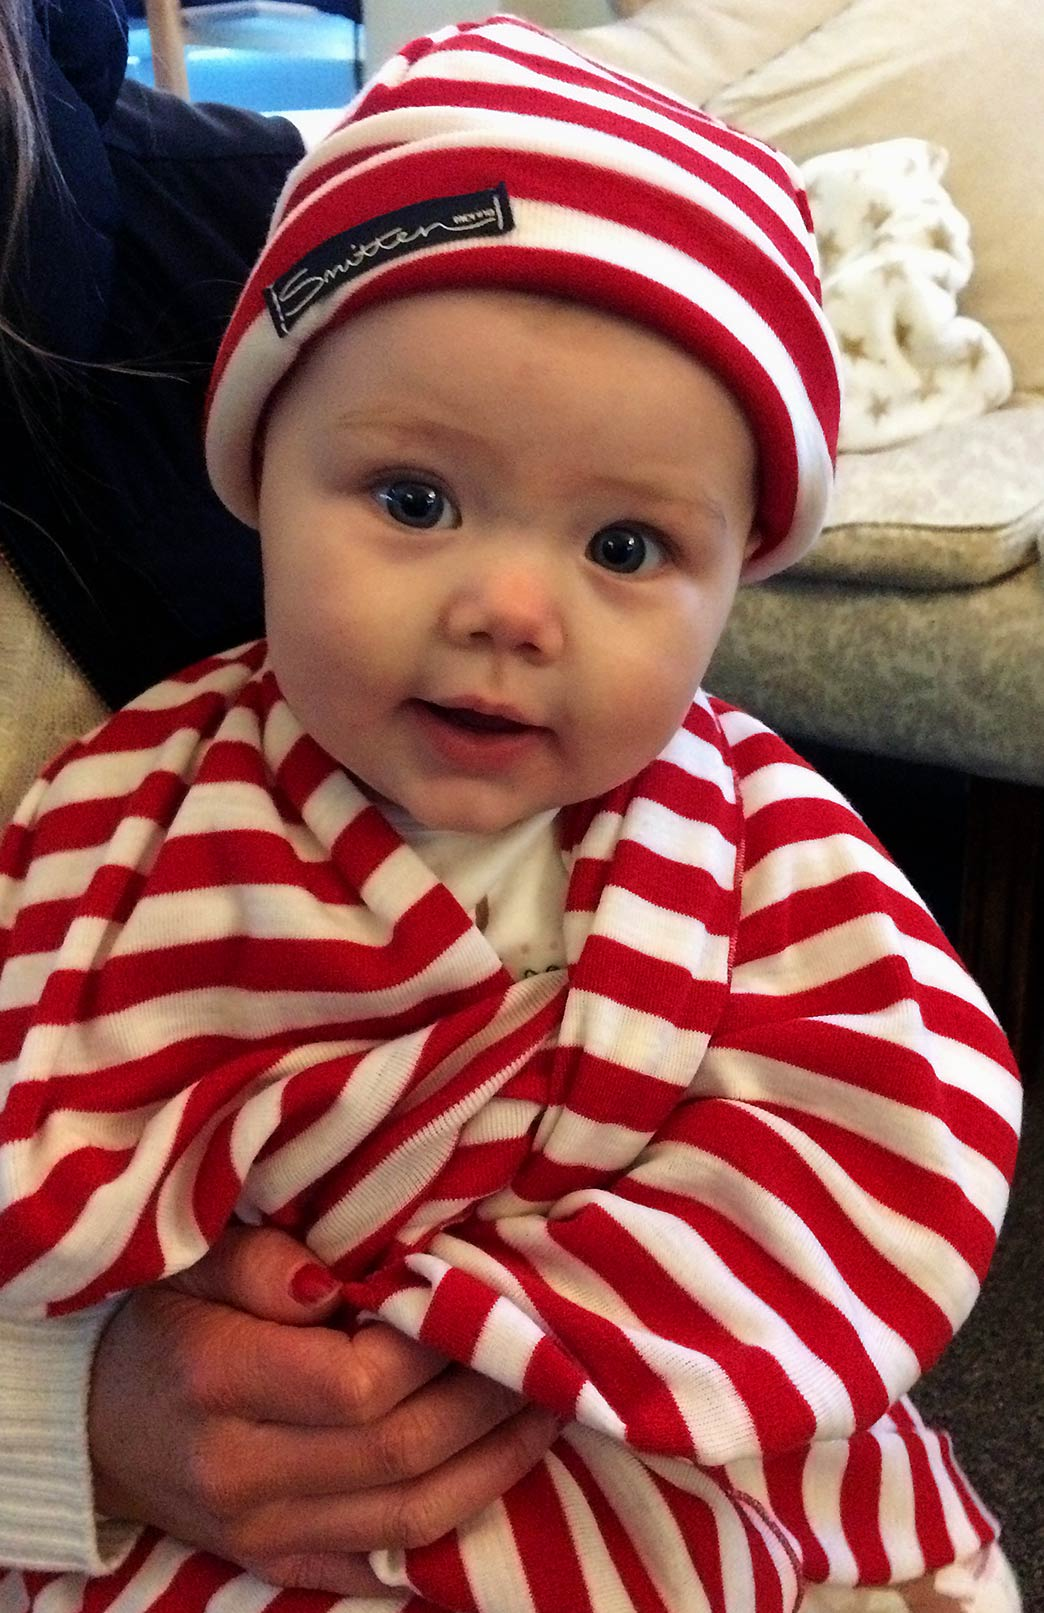 Baby Wrap and Beanie Set - Merino Wool Baby Wrap Blanket and Beanie Gift Set (Limited Edition Red White Stripe Combo) - Smitten Merino Tasmania Australia